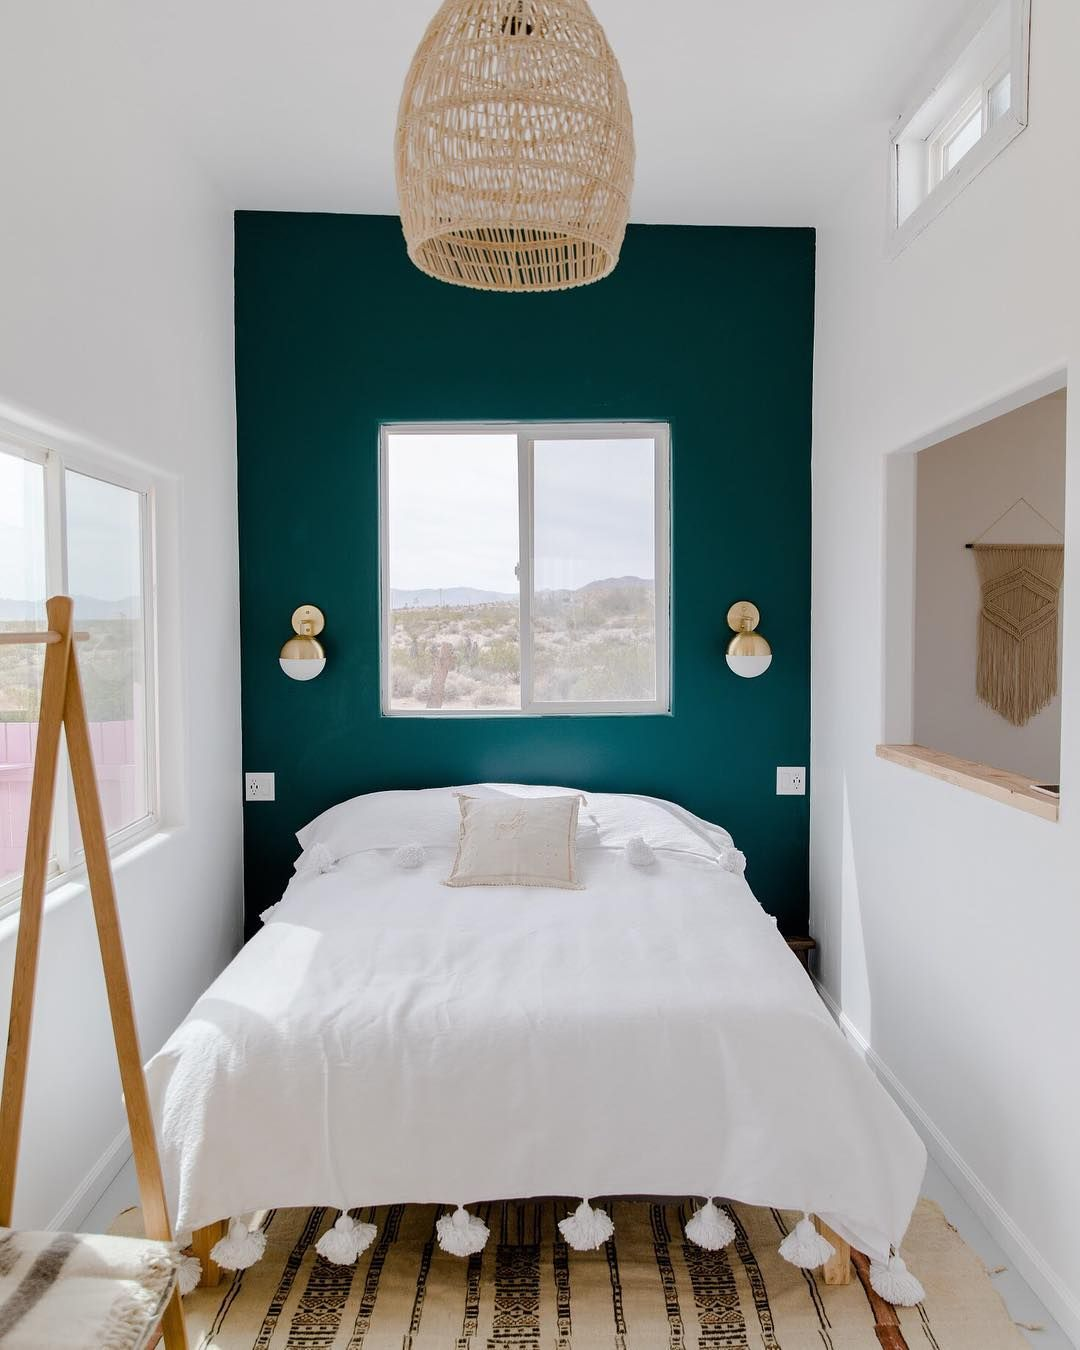 awesome luxus hausrenovierung stil traditionelles schlafzimmer ideen die richtige option fur sie #6: Obsessed with this color